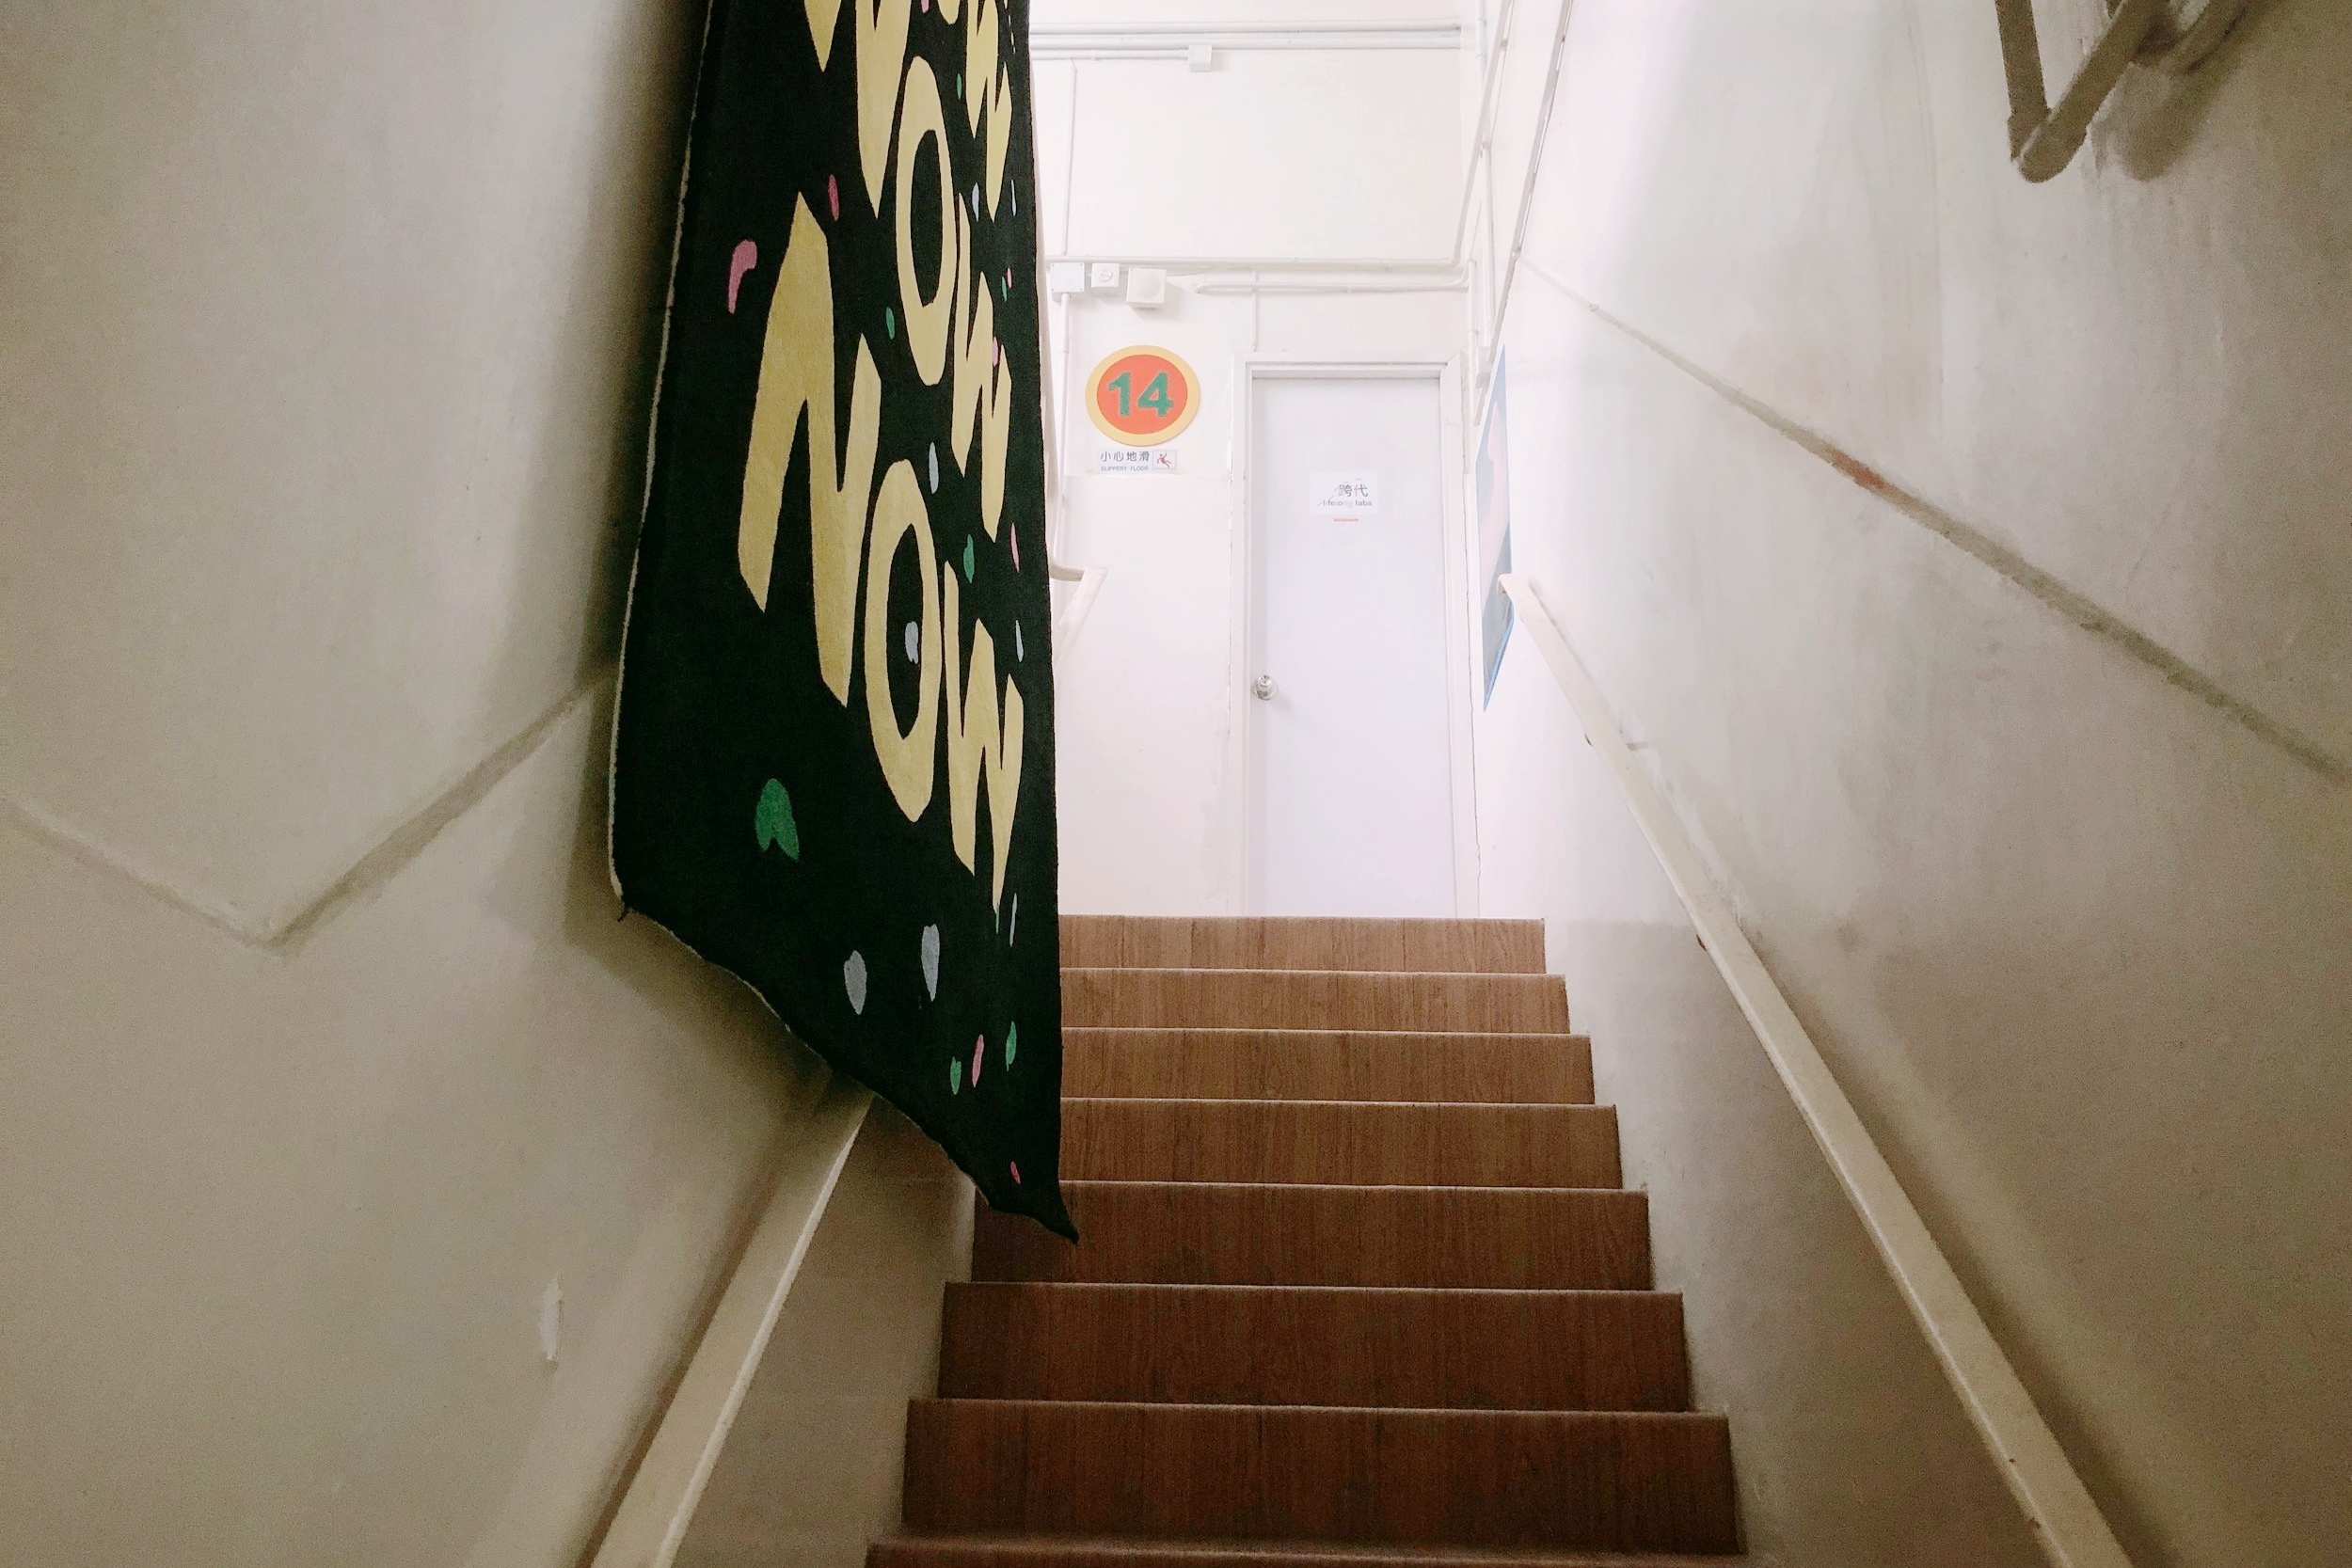 turn left - once you go up the stairs.